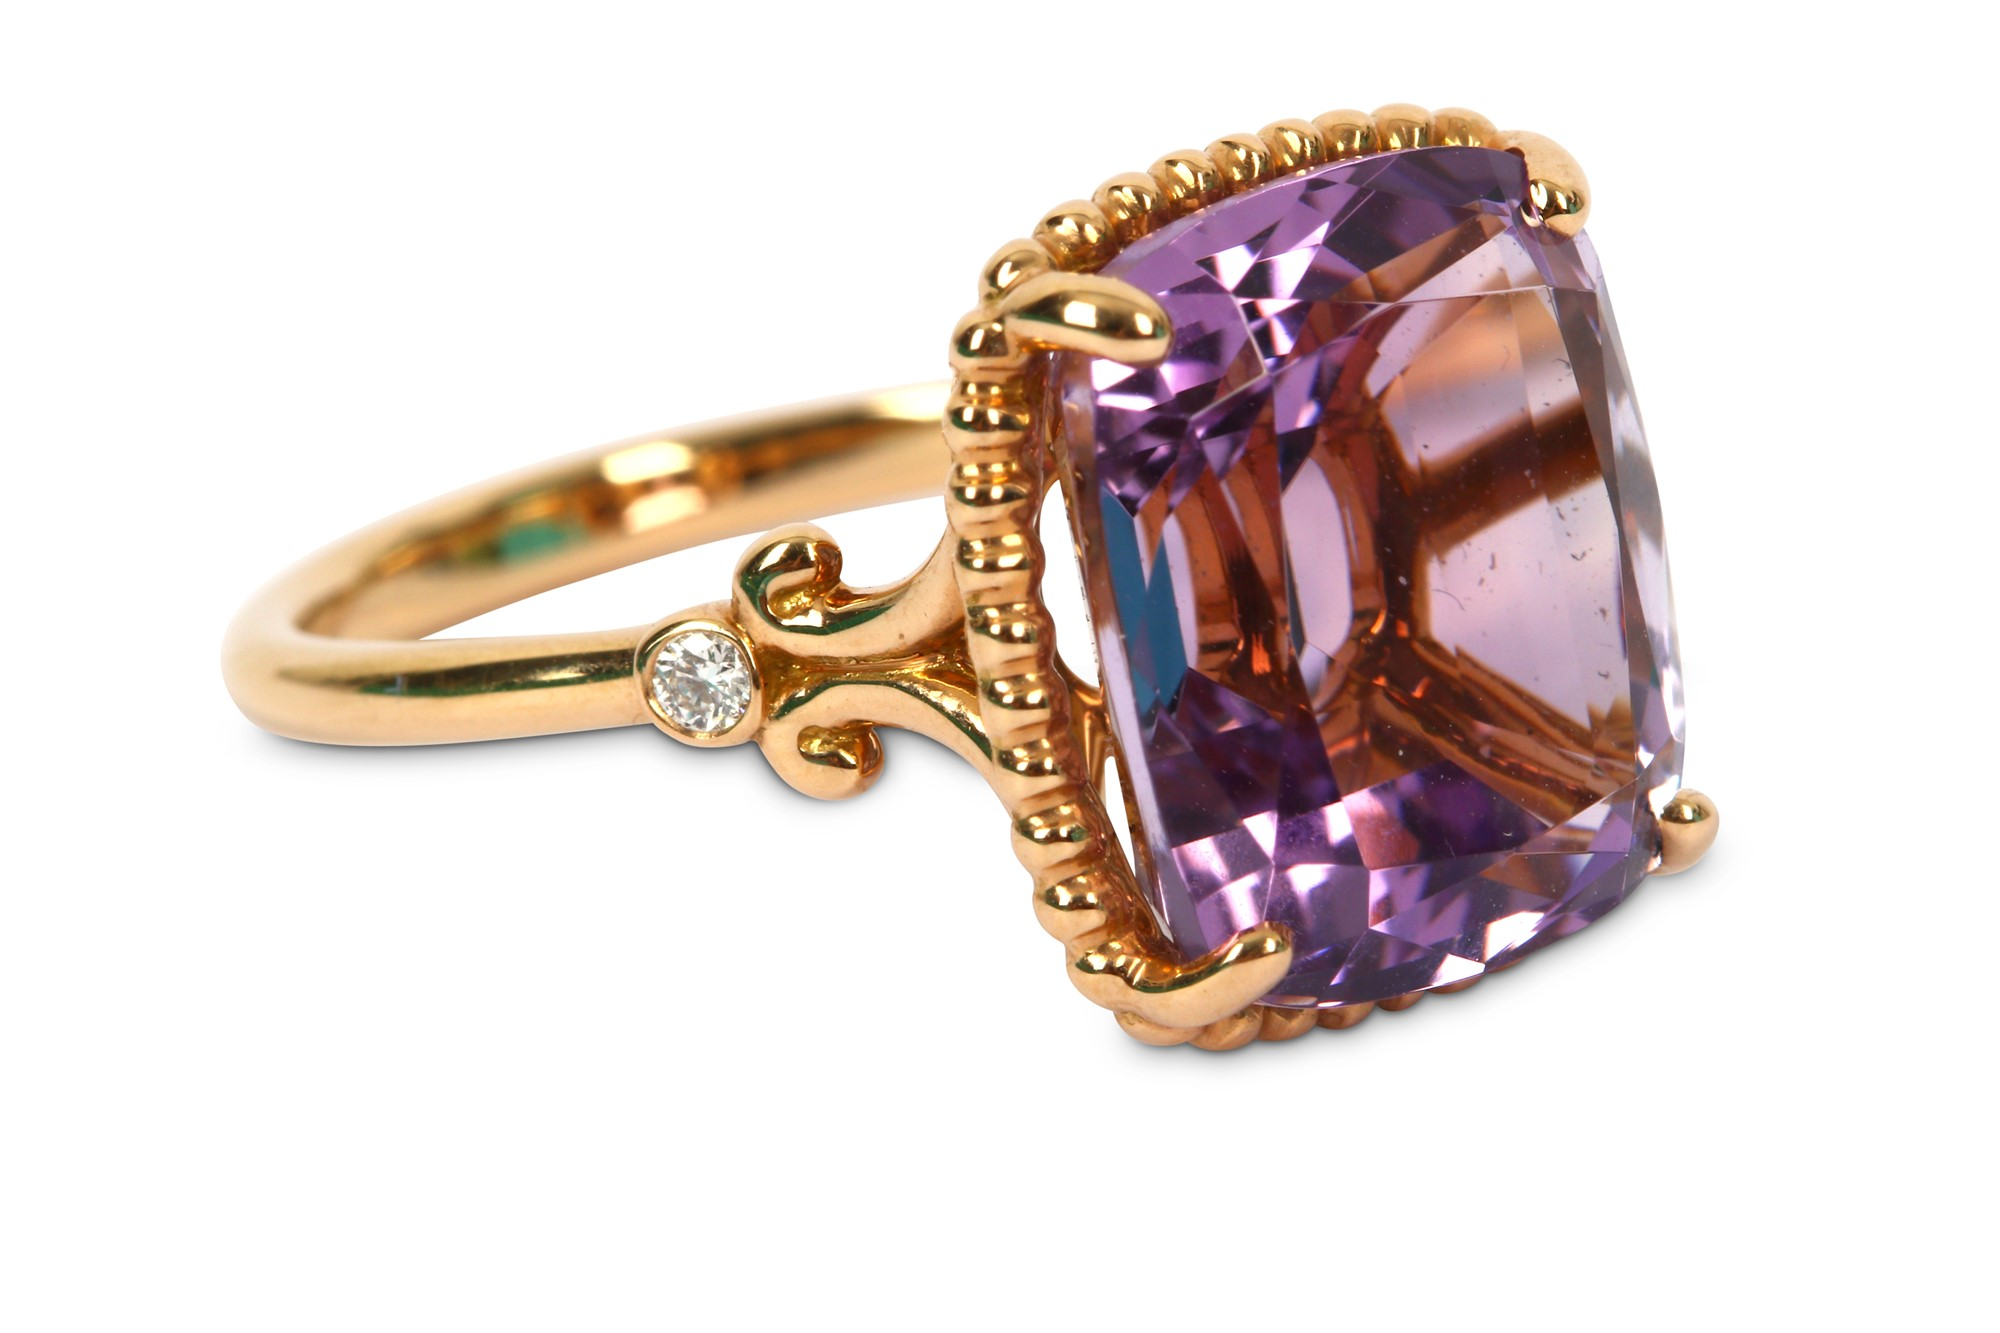 An amethyst and diamond ring, by Tiffany & Co.